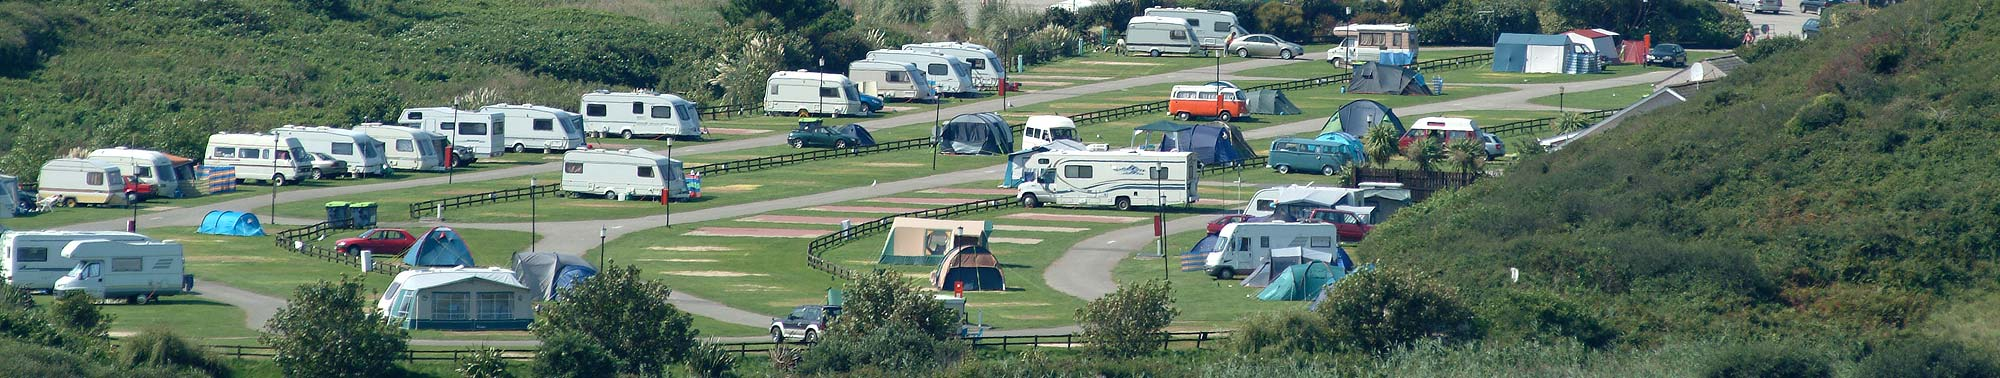 Touring and camping at Porth Beach Holiday Park